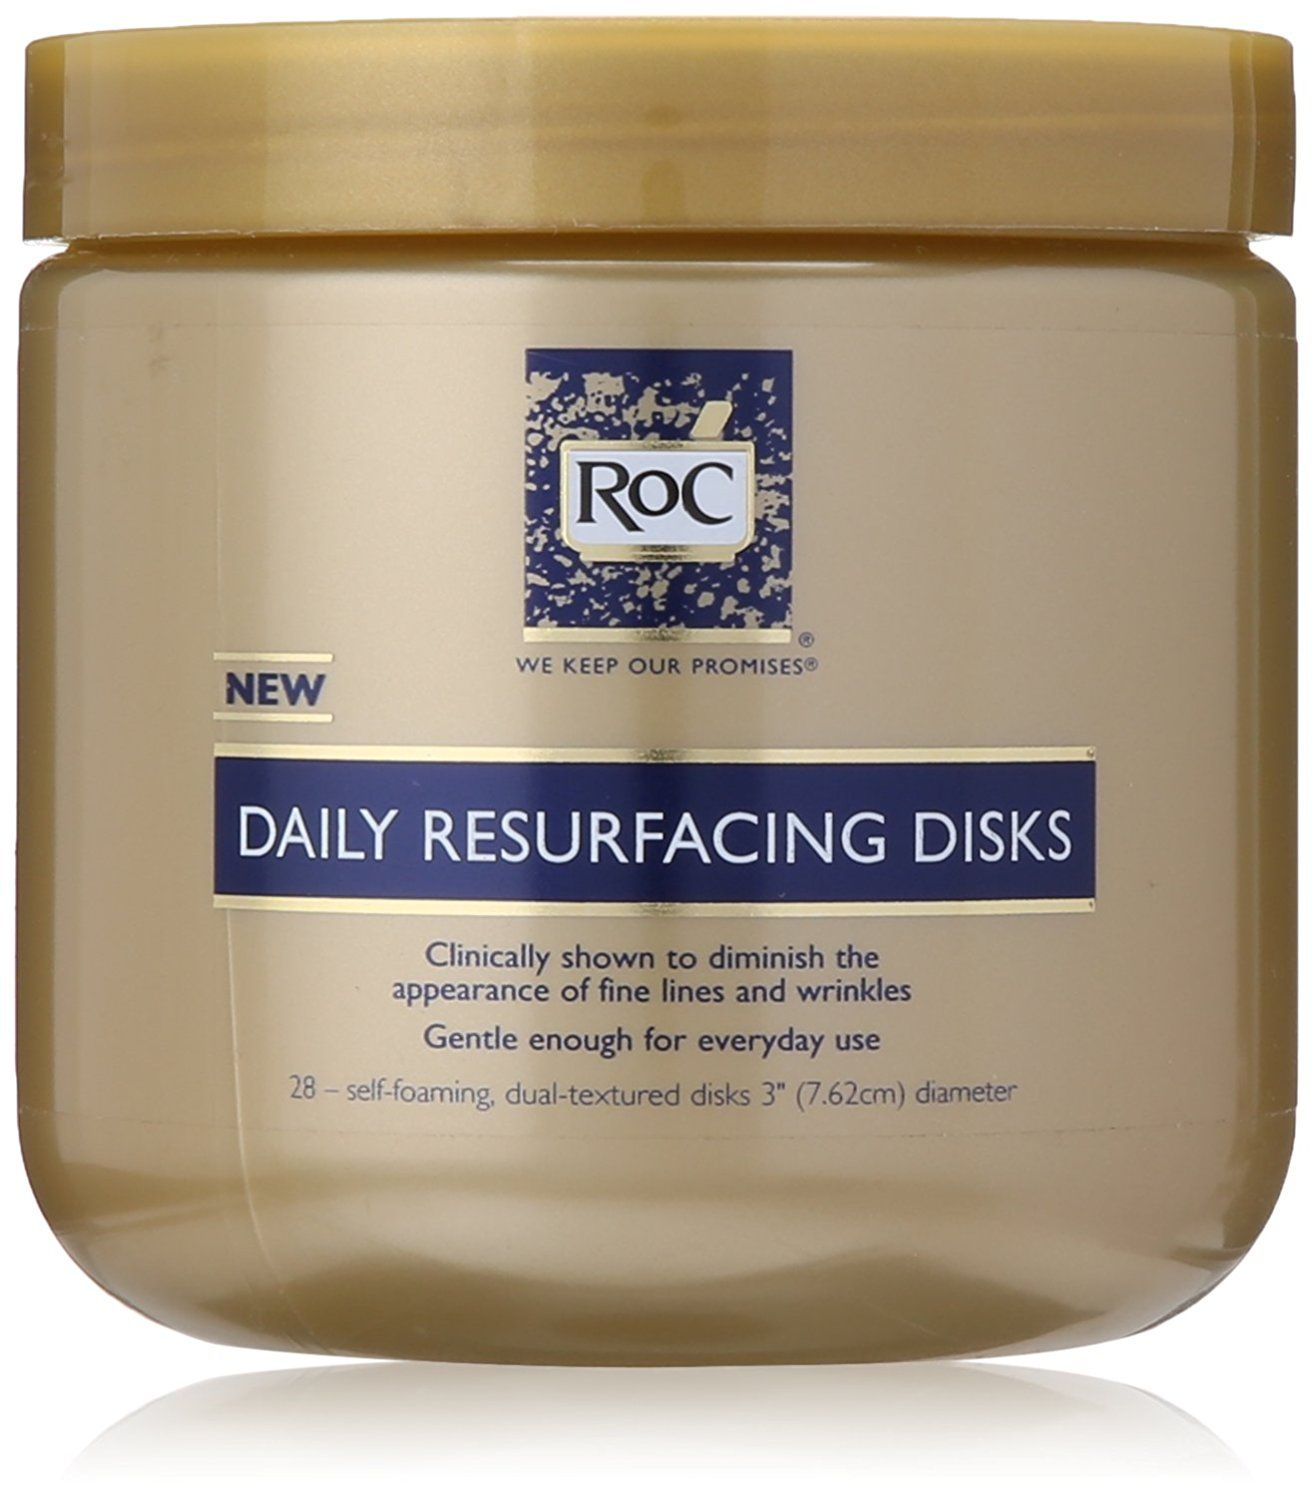 Roc Daily Resurfacing Disks 3 Inch 28 Disks Quickly View This Special Product Click The Im Skin Cream Anti Aging Anti Aging Skin Treatment Cleansing Pads